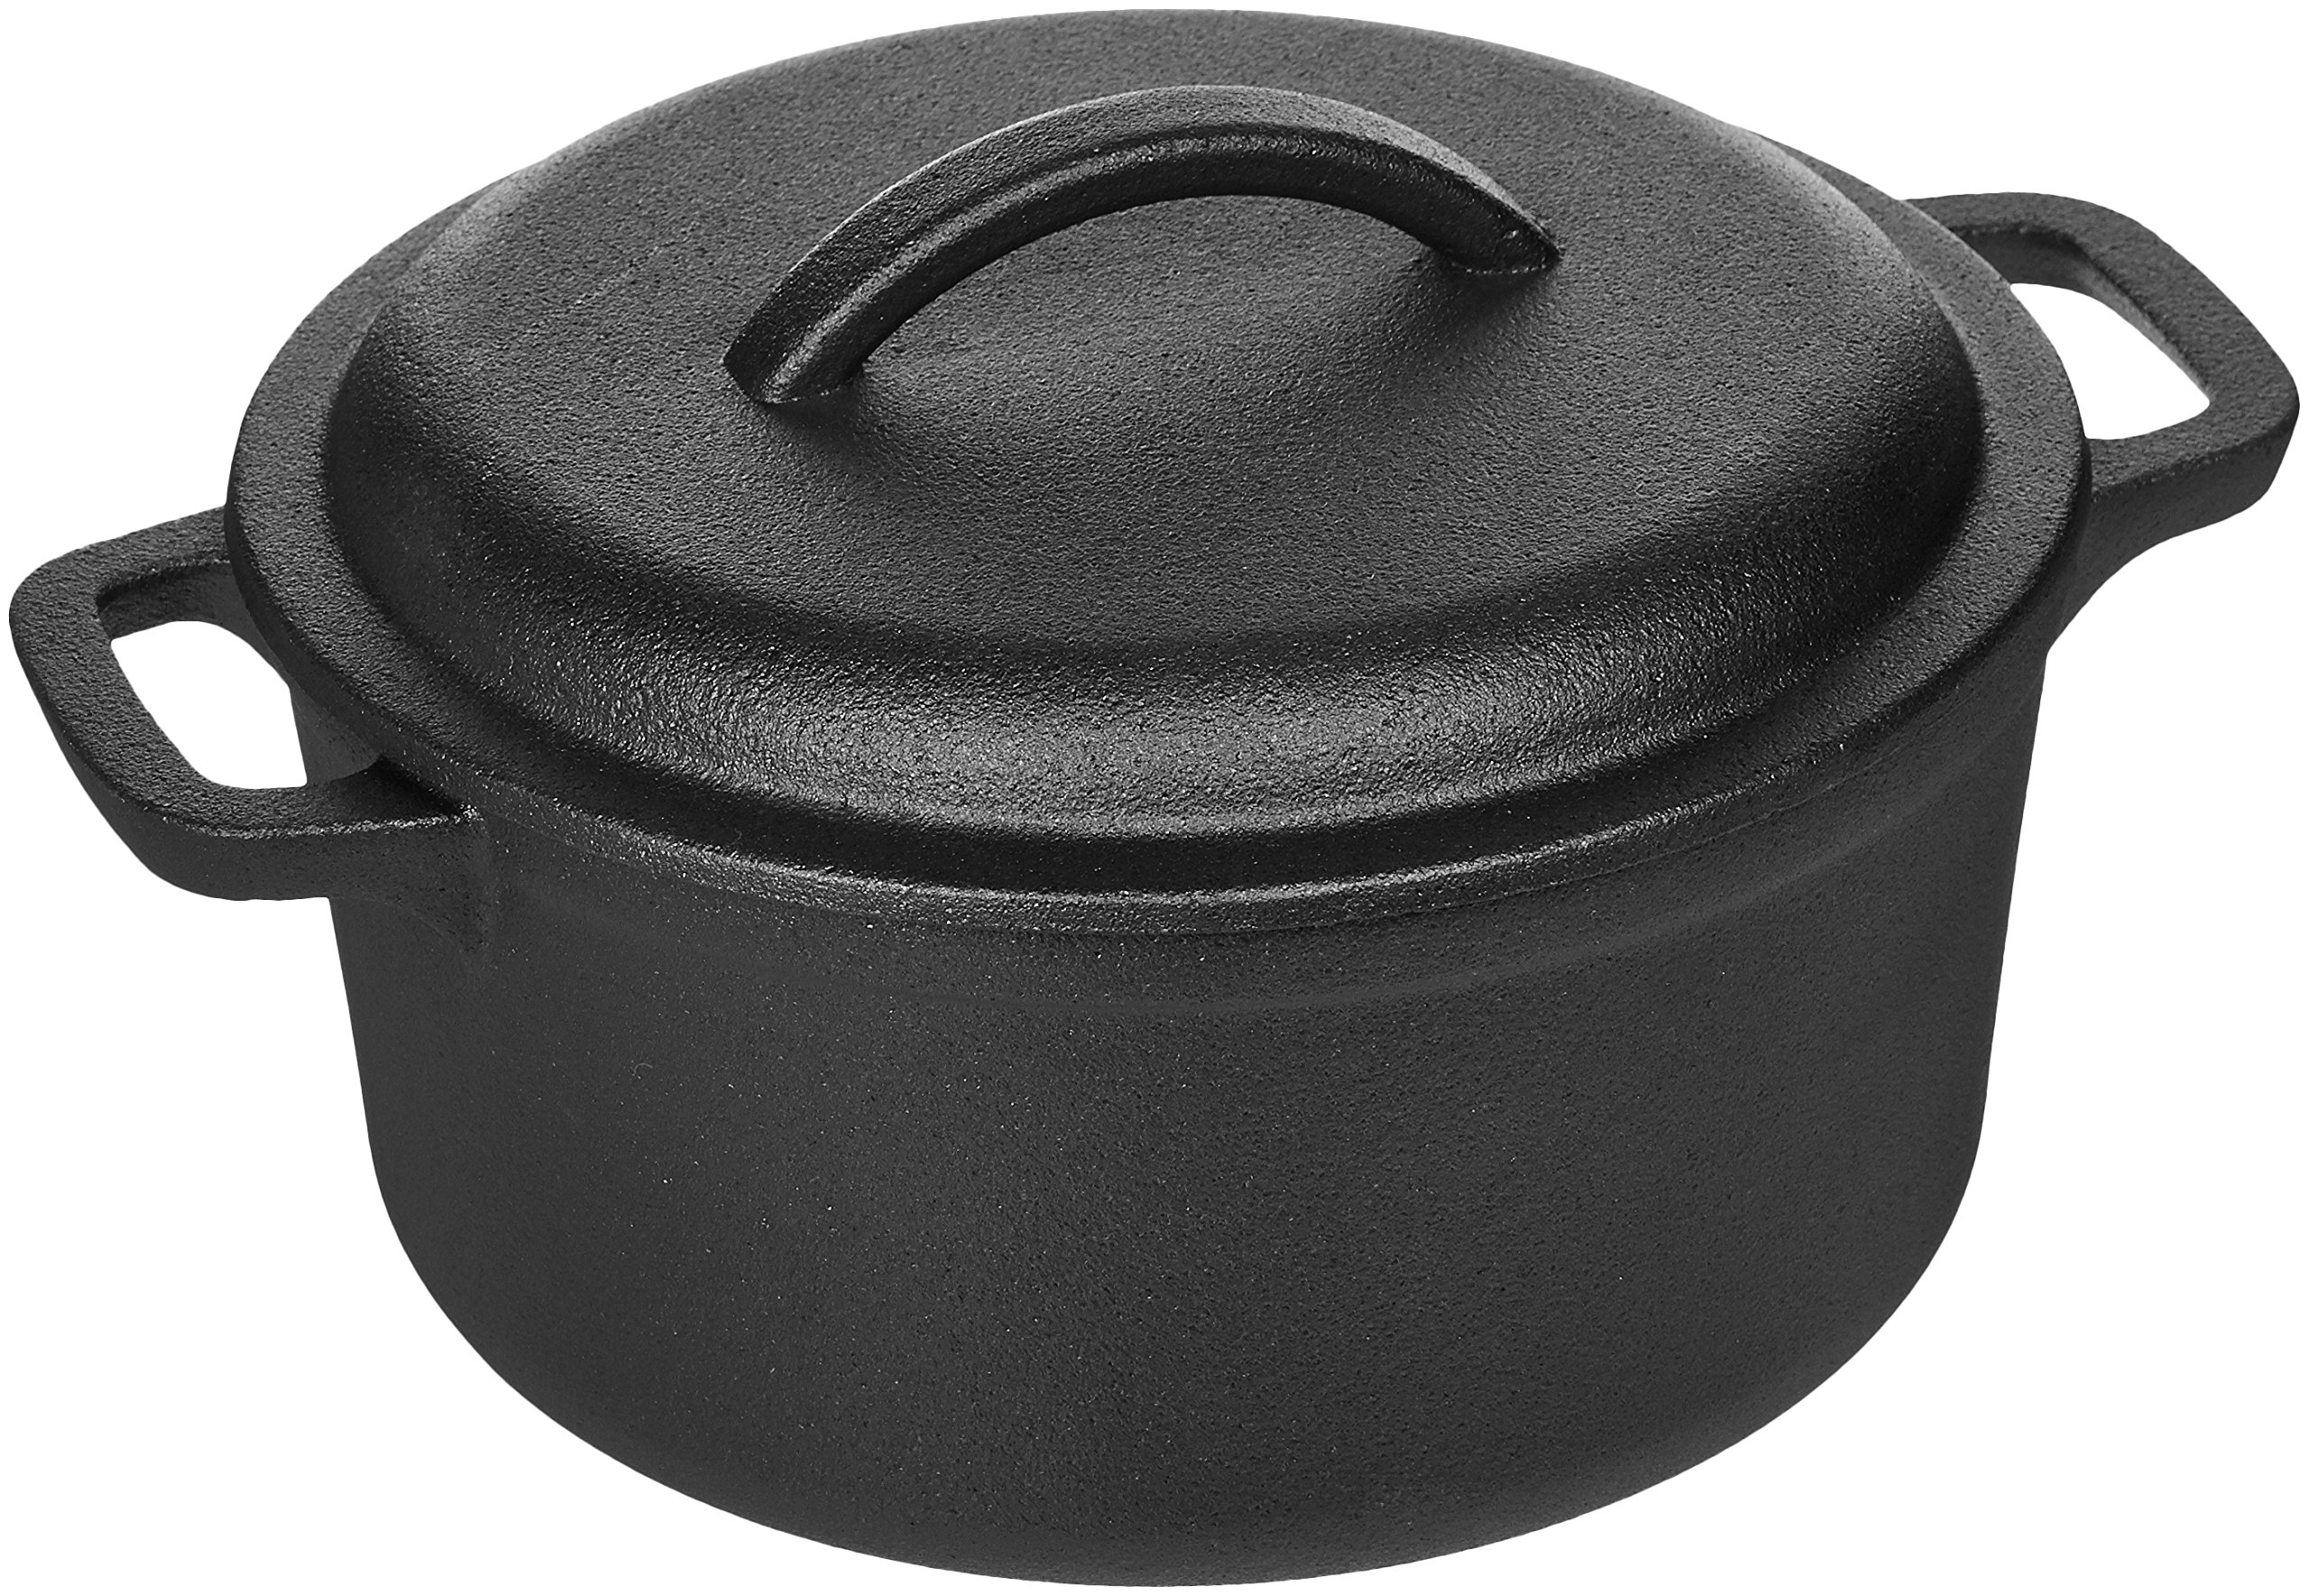 AmazonBasics Pre-Seasoned Cast Iron Dutch Oven Pot with Lid and Dual Handles, 2-Quart by AmazonBasics